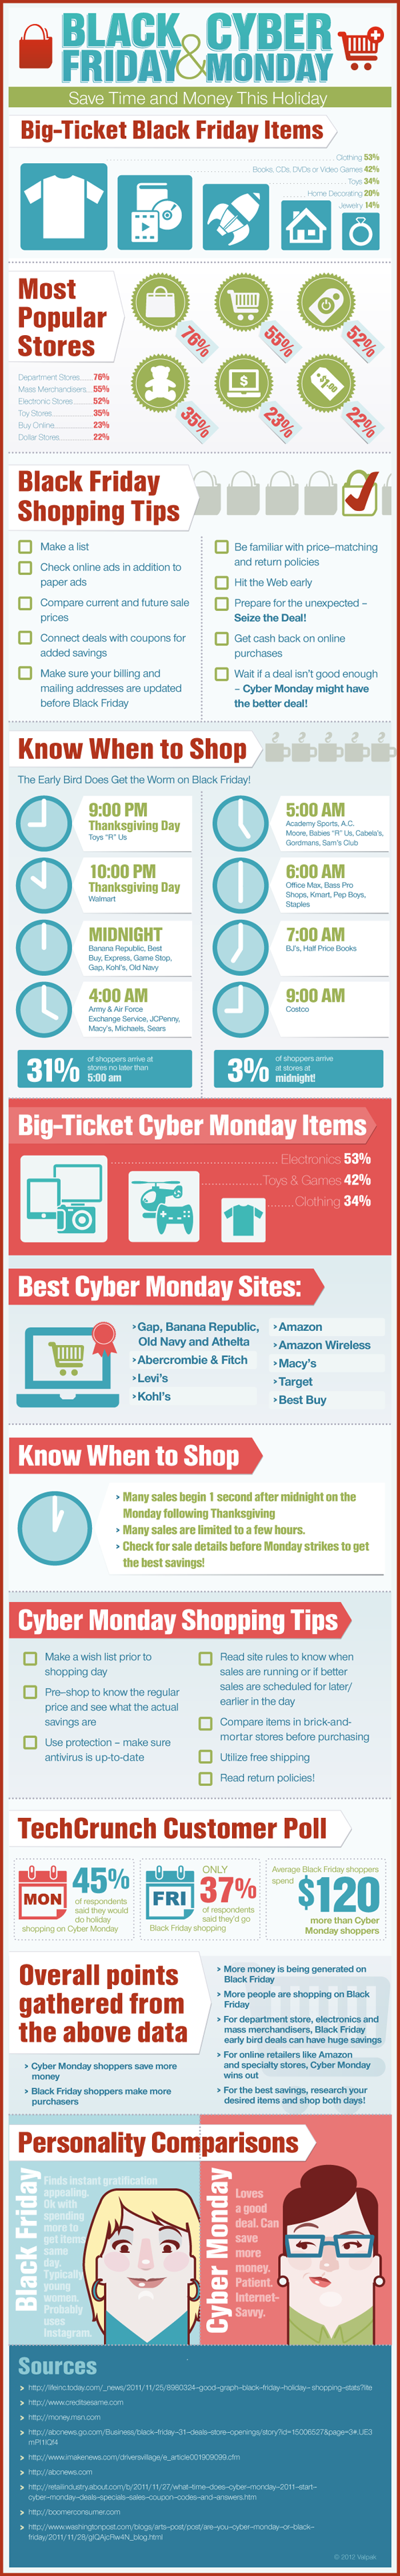 http://www.valpak.com/media/how-to-shop-on-black-friday-and-cyber-monday.jsp